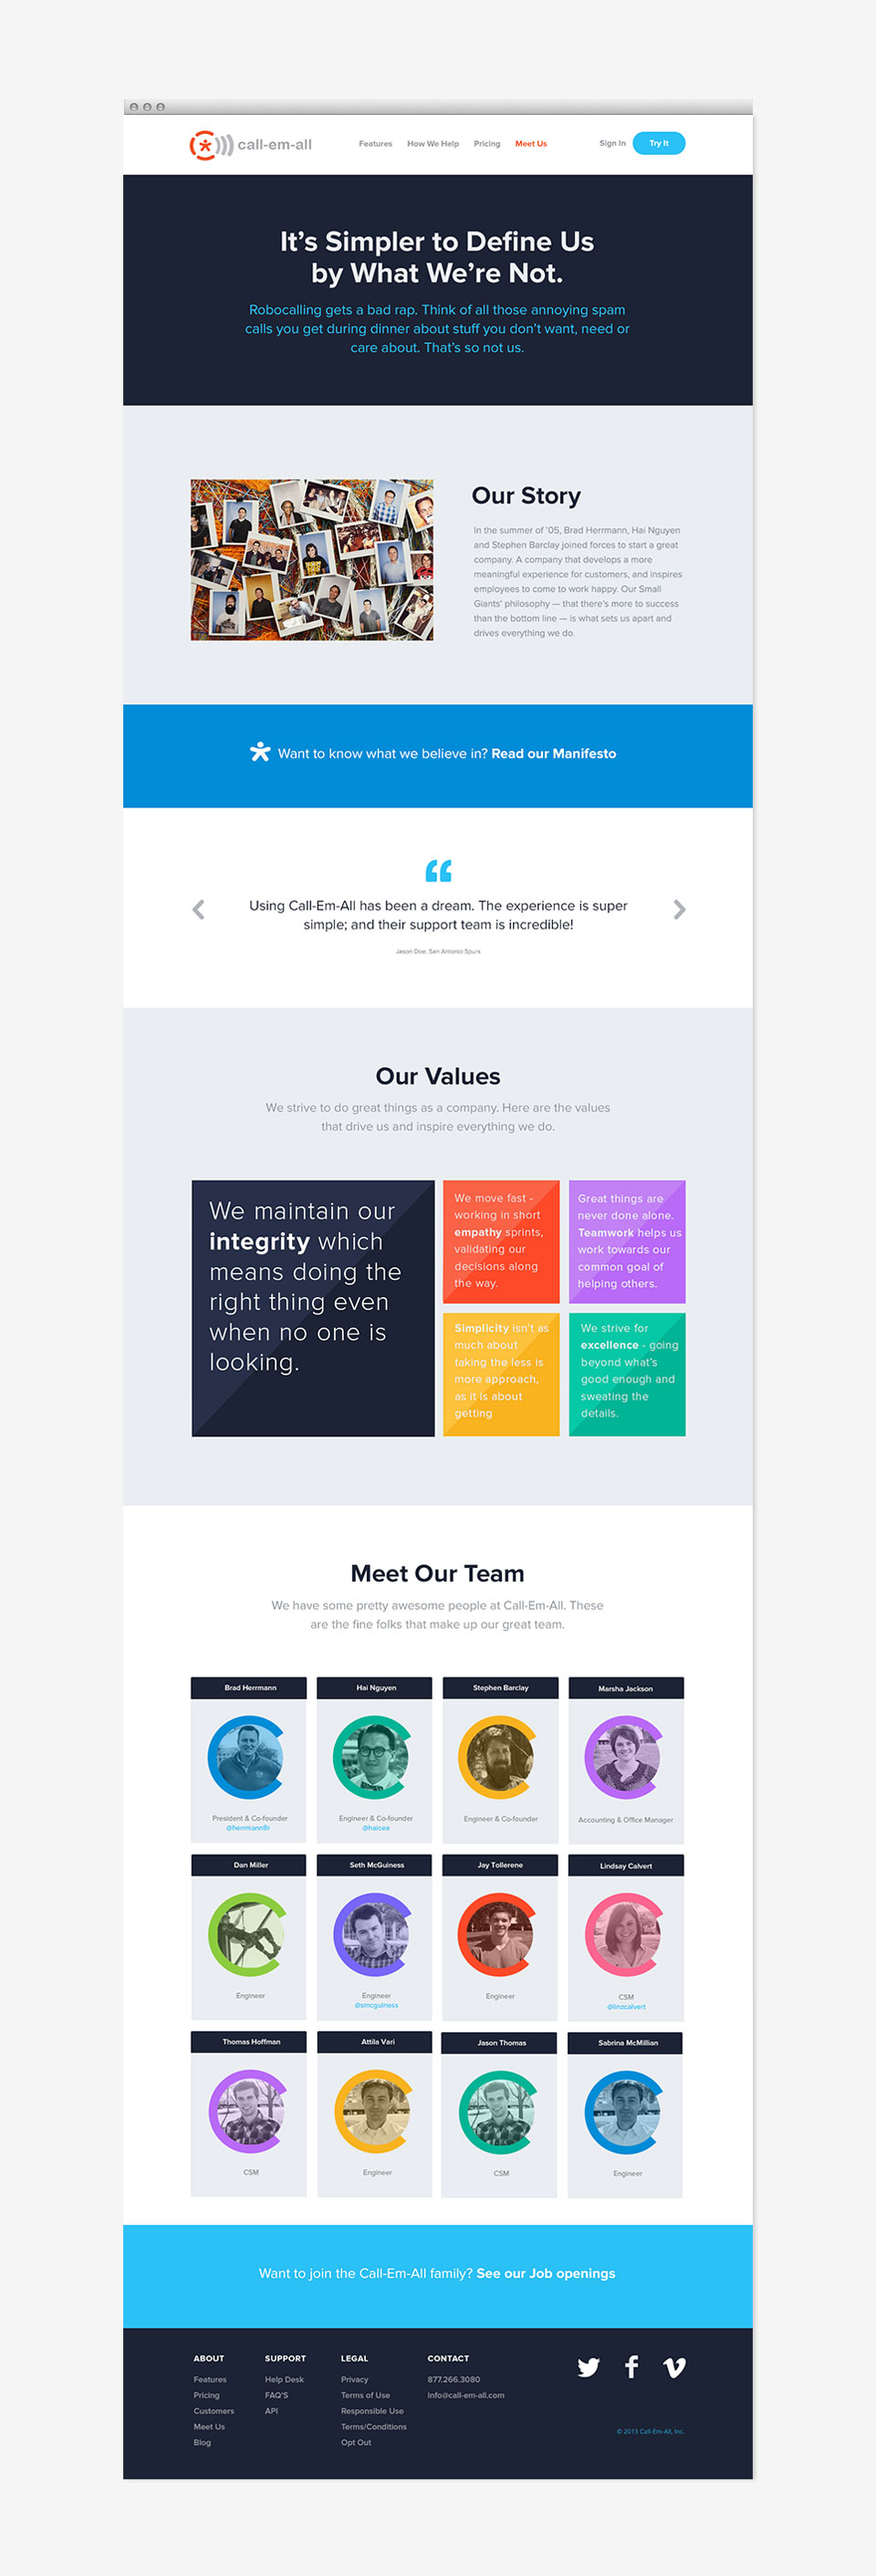 call-em-all website by motto